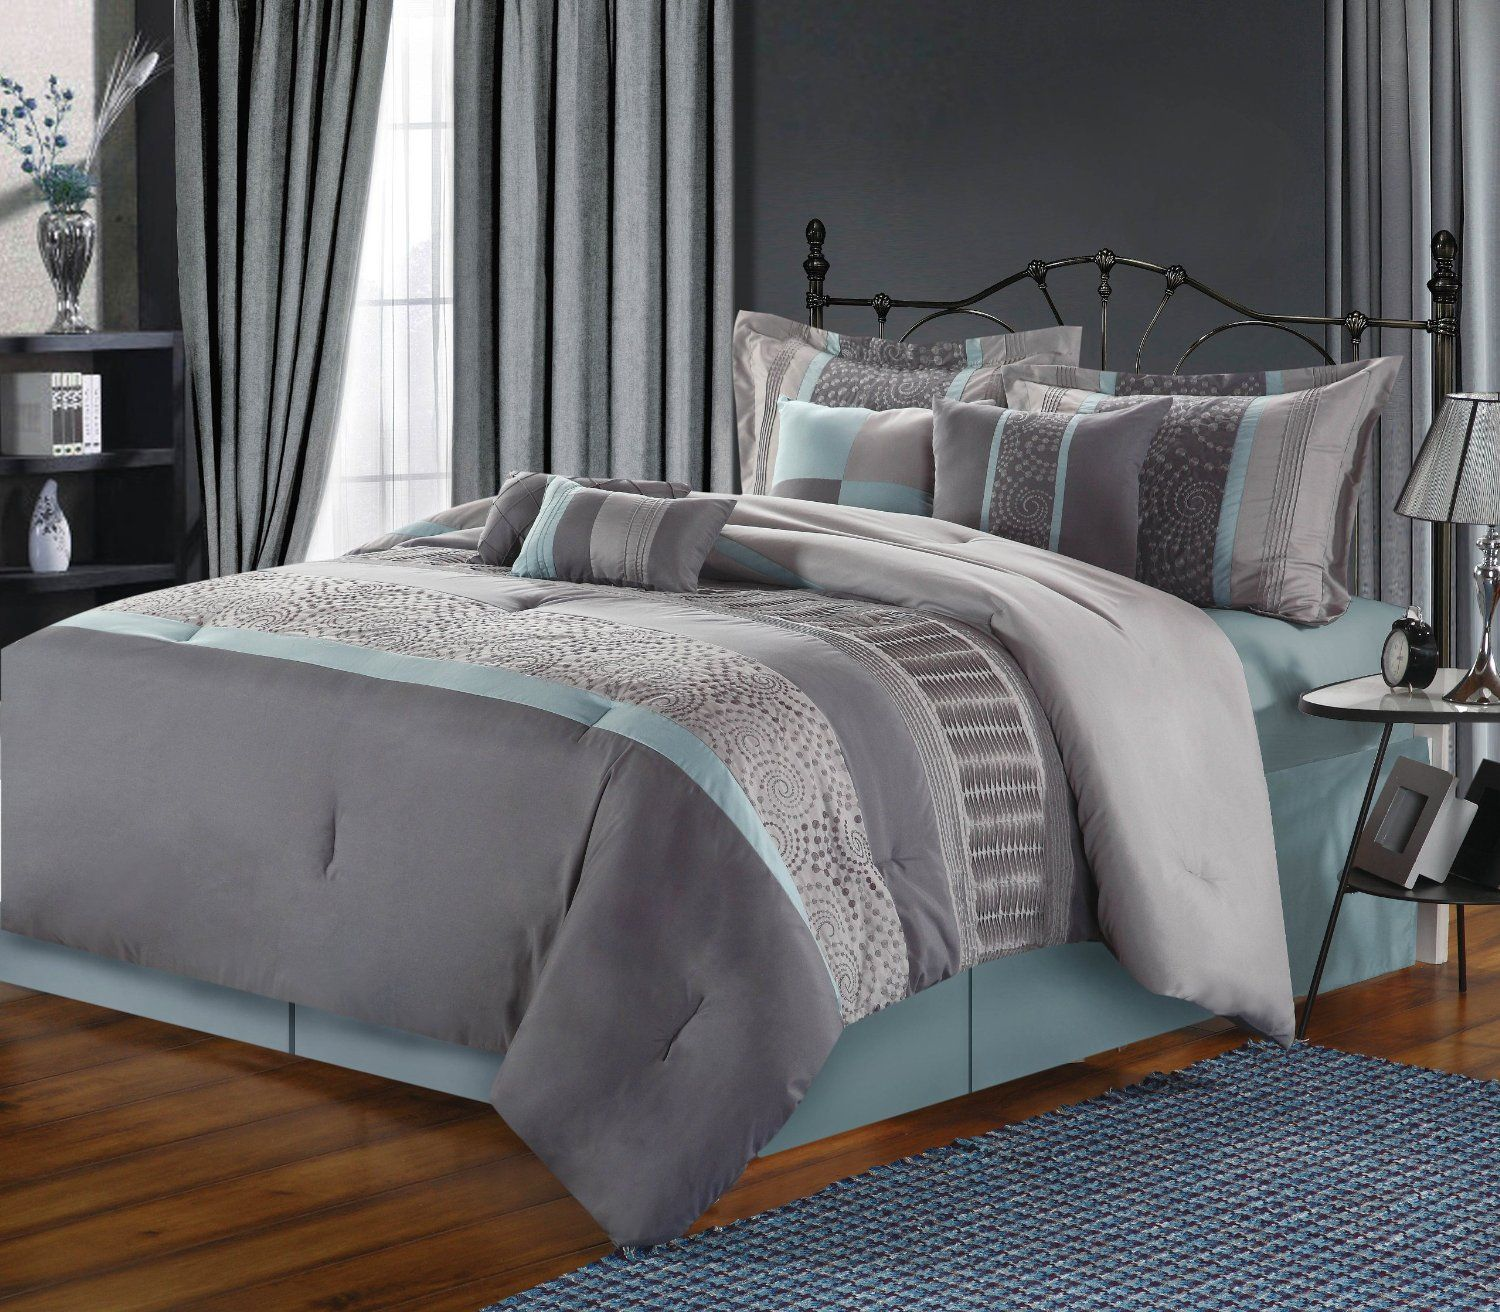 Grey beige and aqua contemporary decorating chic home 8 for Home designs comforter